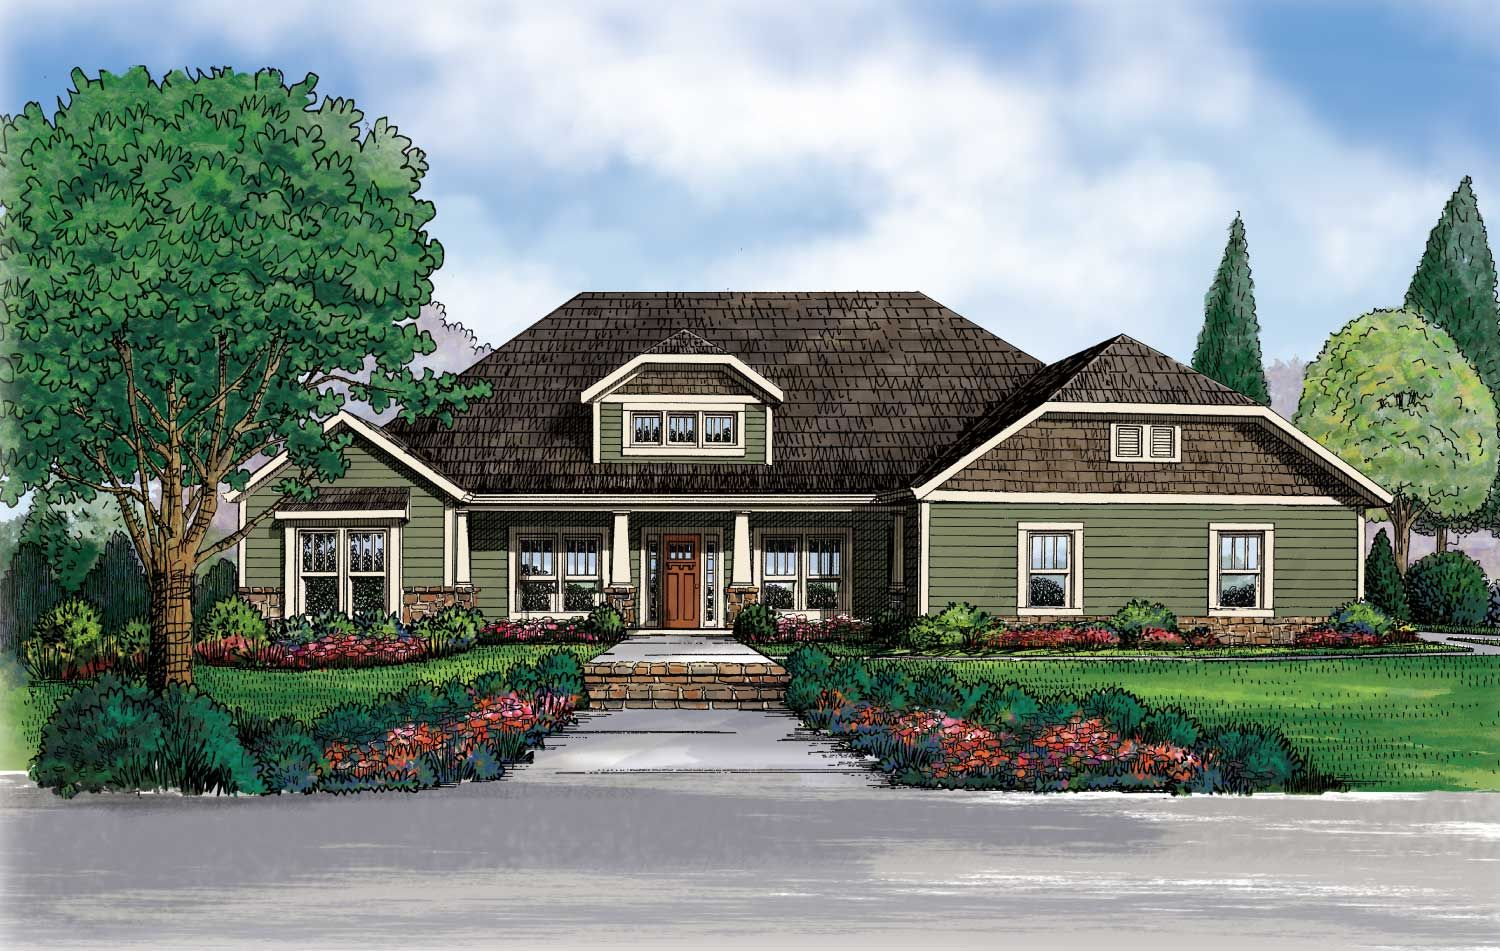 This extraordinary Craftsman style home with Dutch hip roof ... on craftsman house plans with hip roof, craftsman style porch roof, ranch house with hip roof, craftsman dormer, craftsman brick bungalow exterior colors, craftsman style house with metal roof, hip roof with gable porch roof,